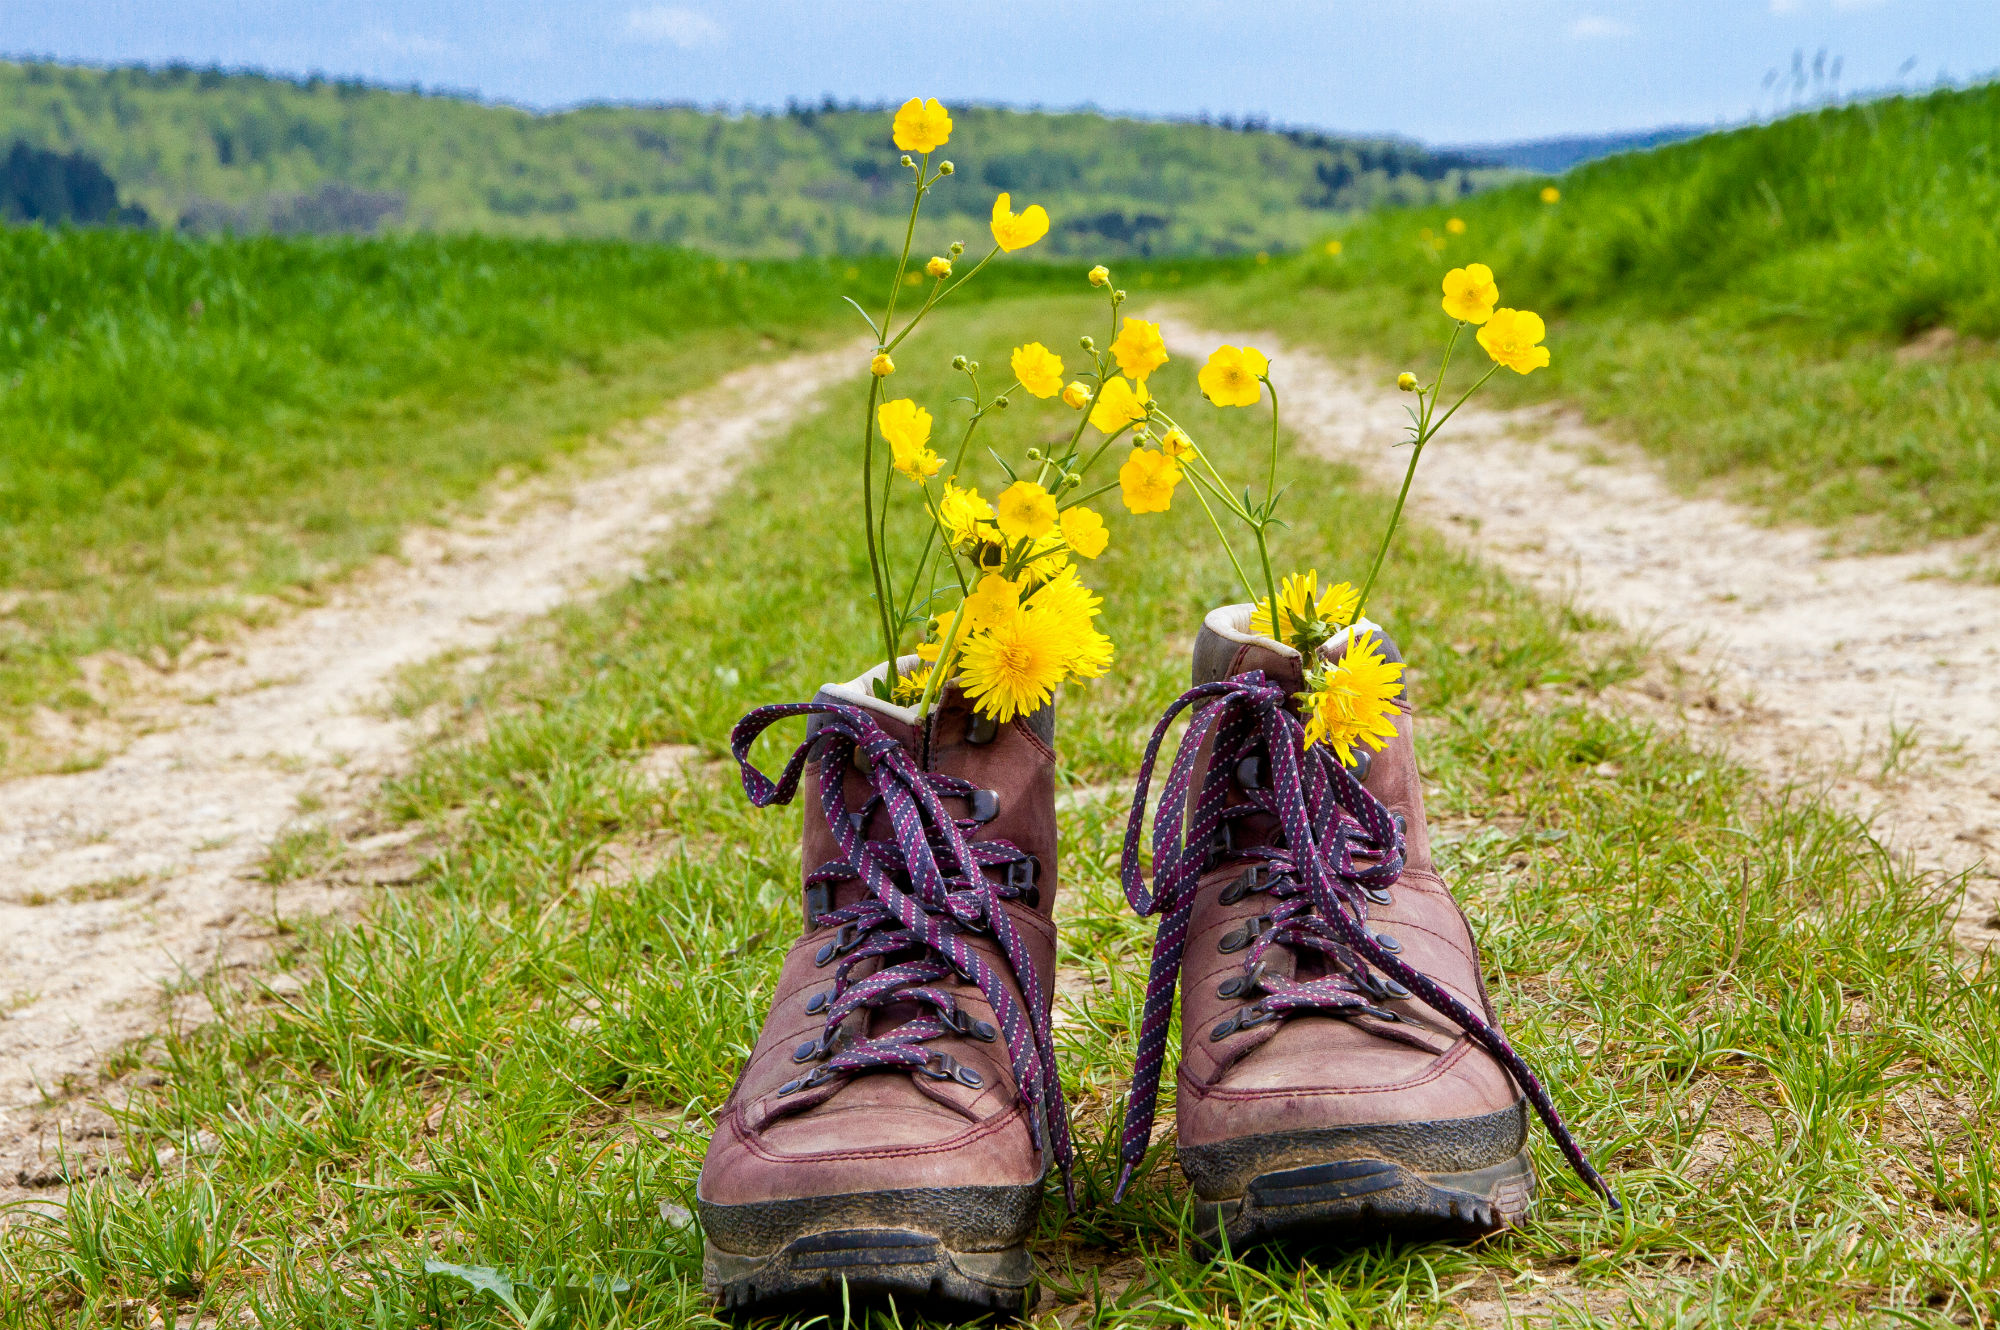 Pair of old walking shoes with field flowers inside on a road